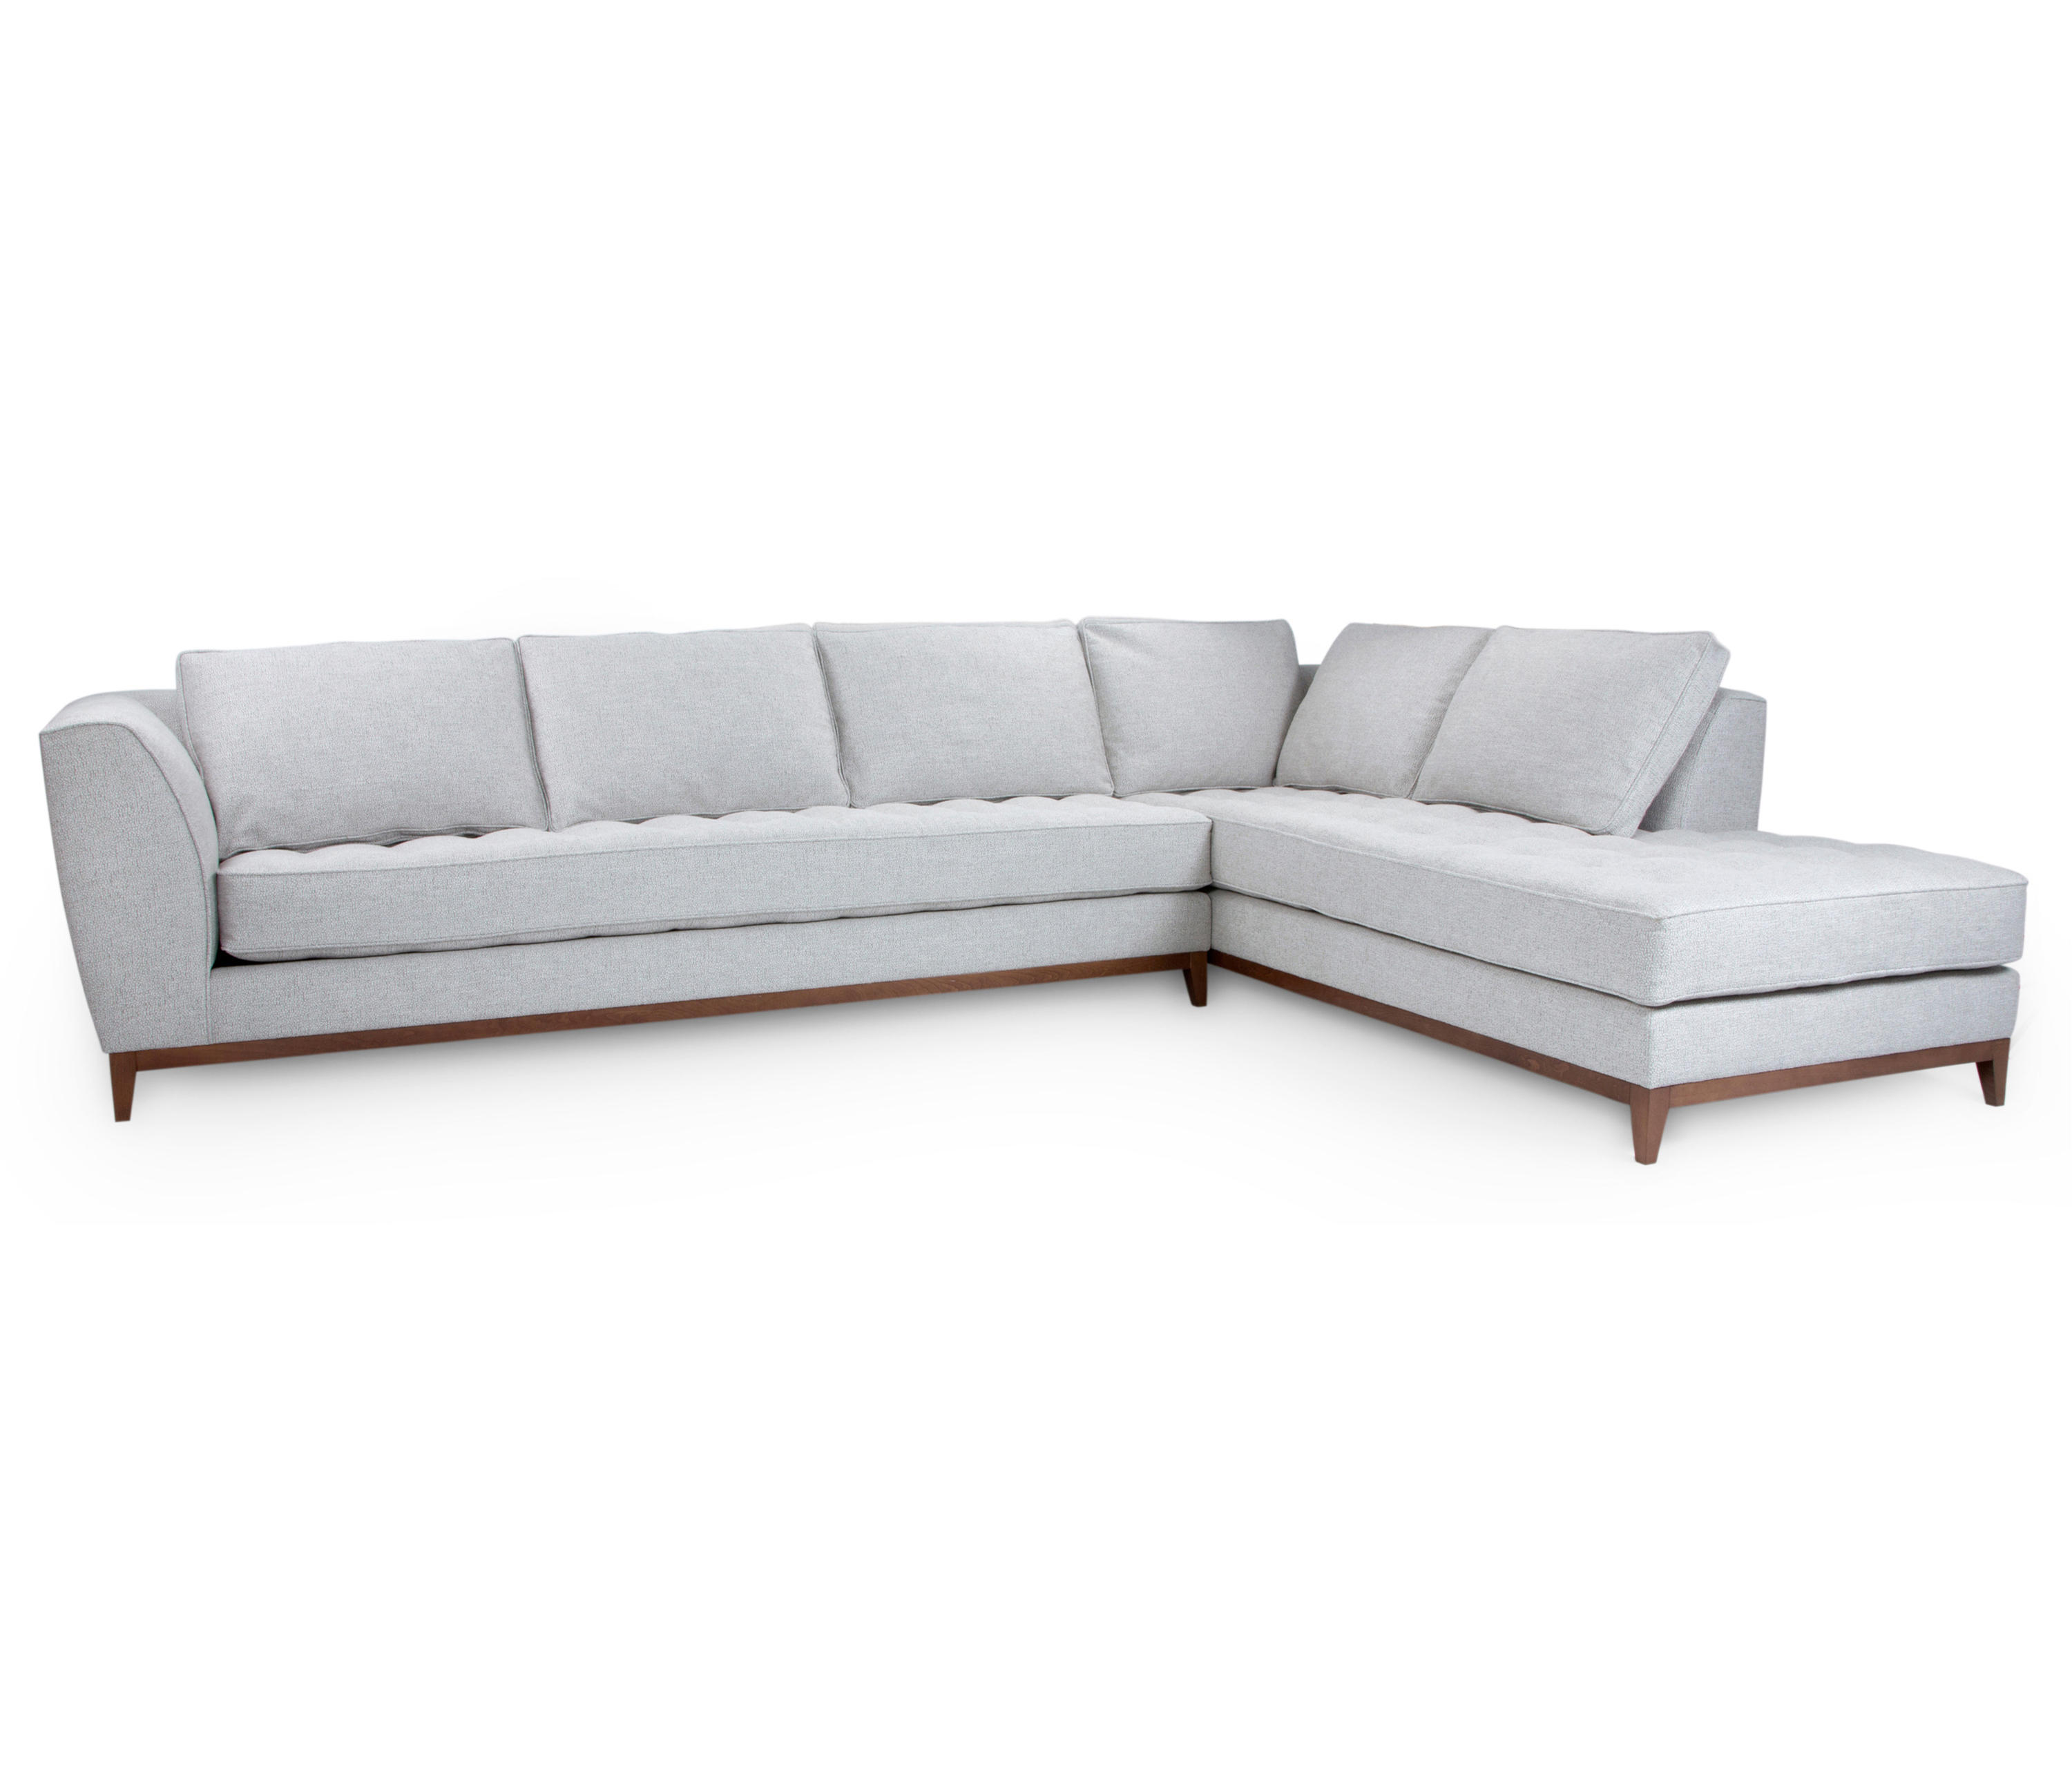 Fine Barbican Corner Sofa Sofas From The Sofa Chair Company Interior Design Ideas Gresisoteloinfo